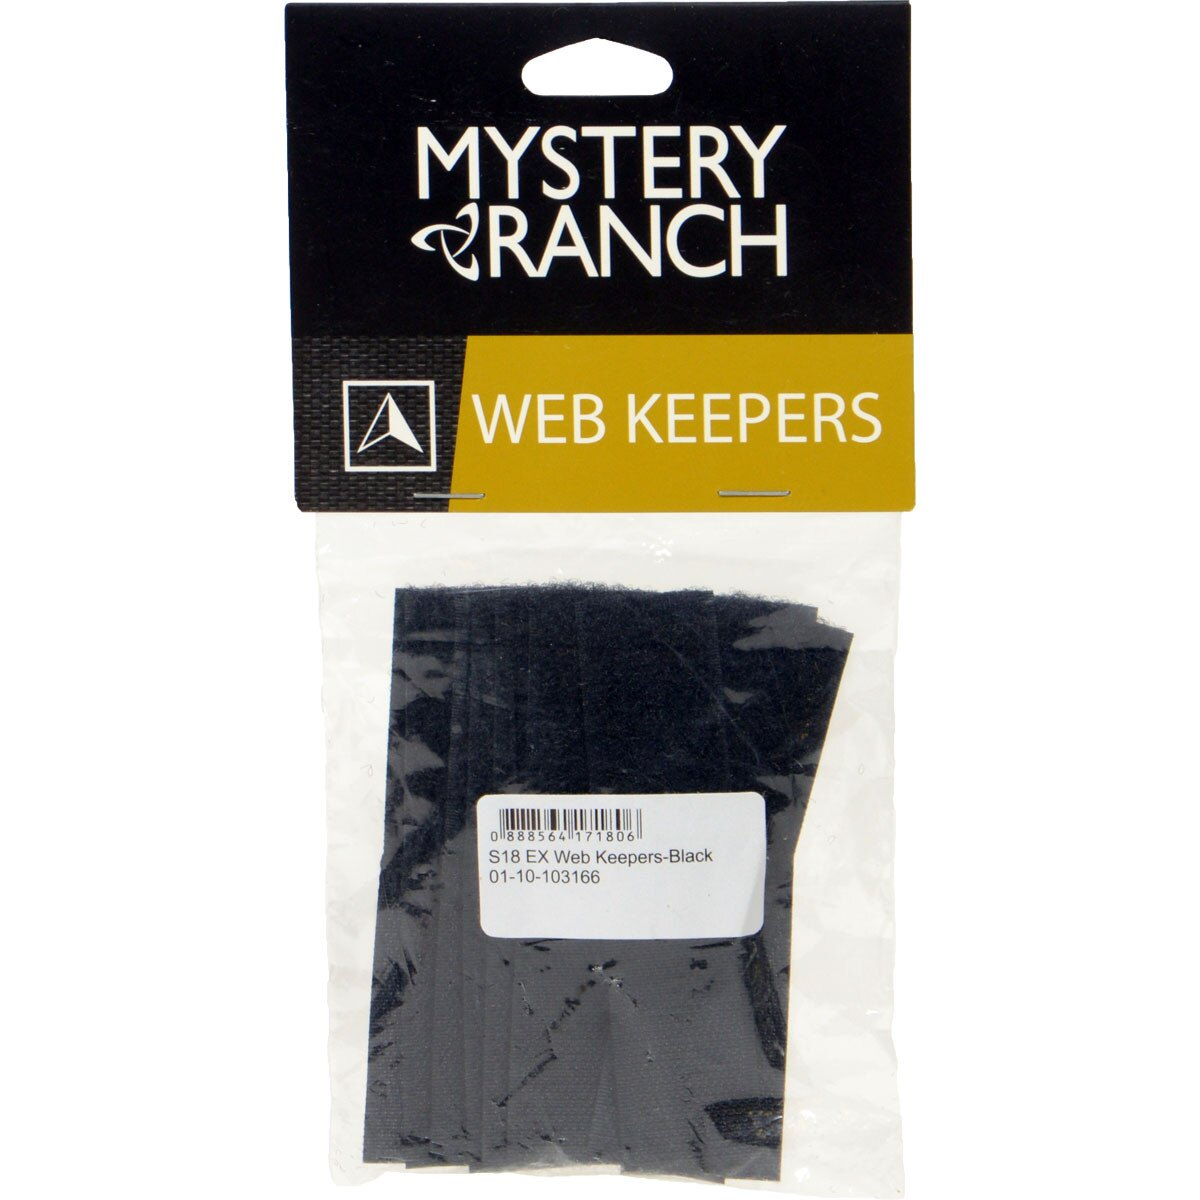 Mystery Ranch 神秘農場Web Keepers 背包整理帶 10 cm -黑 Black 台灣製61177Z1080【Happy Outdoor 花蓮遊遍天下】